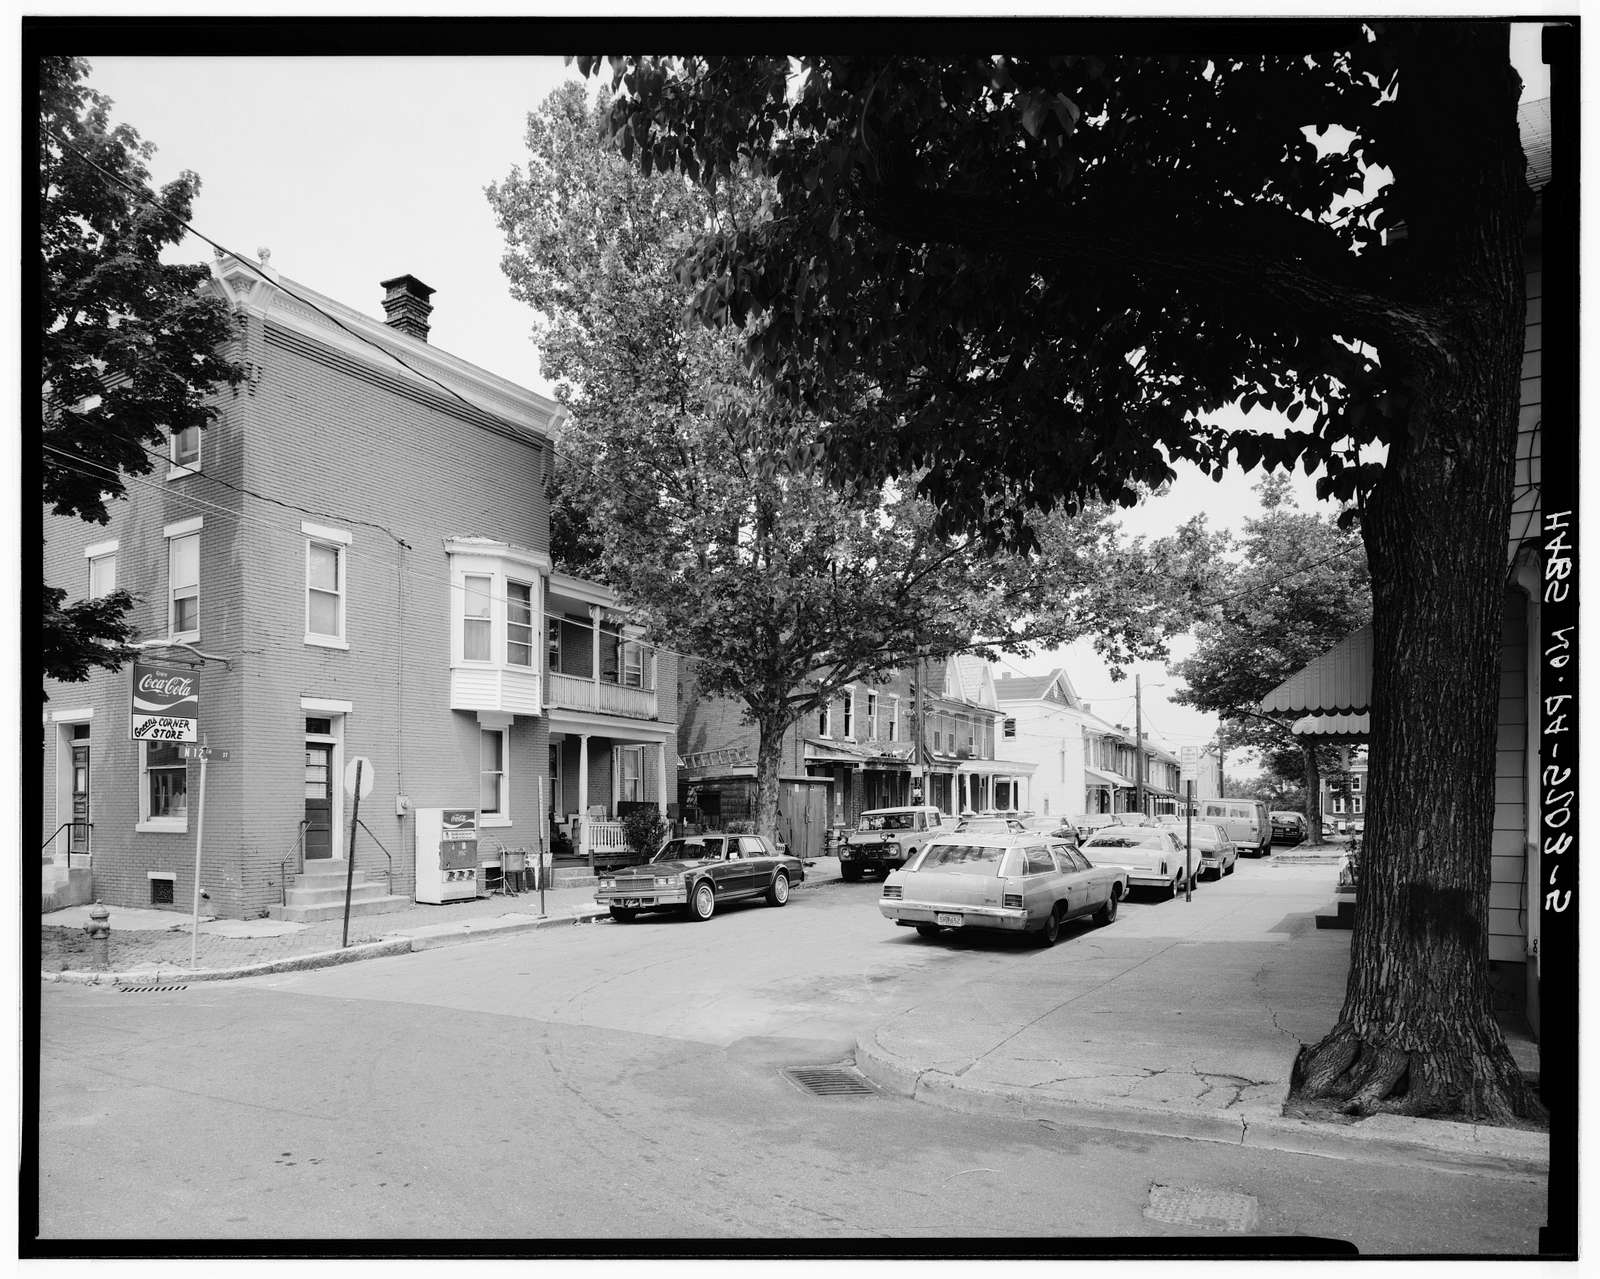 Allison Hill (Houses), State, Berryhill, Crescent, Royal Terrace & Seventeenth Streets, Harrisburg, Dauphin County, PA